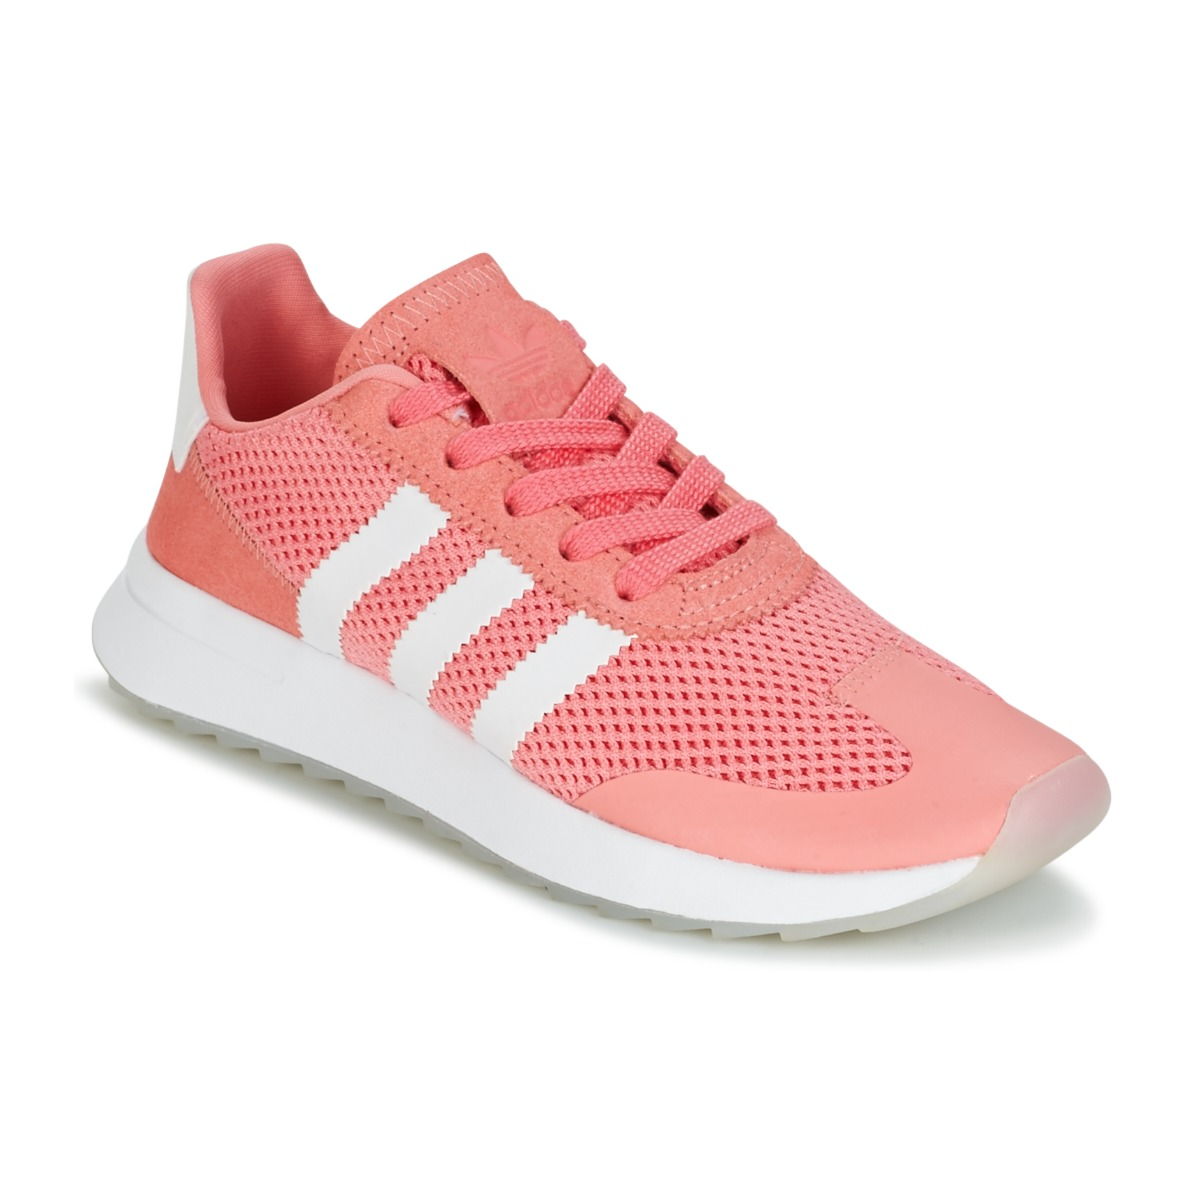 Adidas Originals FLB W Rose / Corail